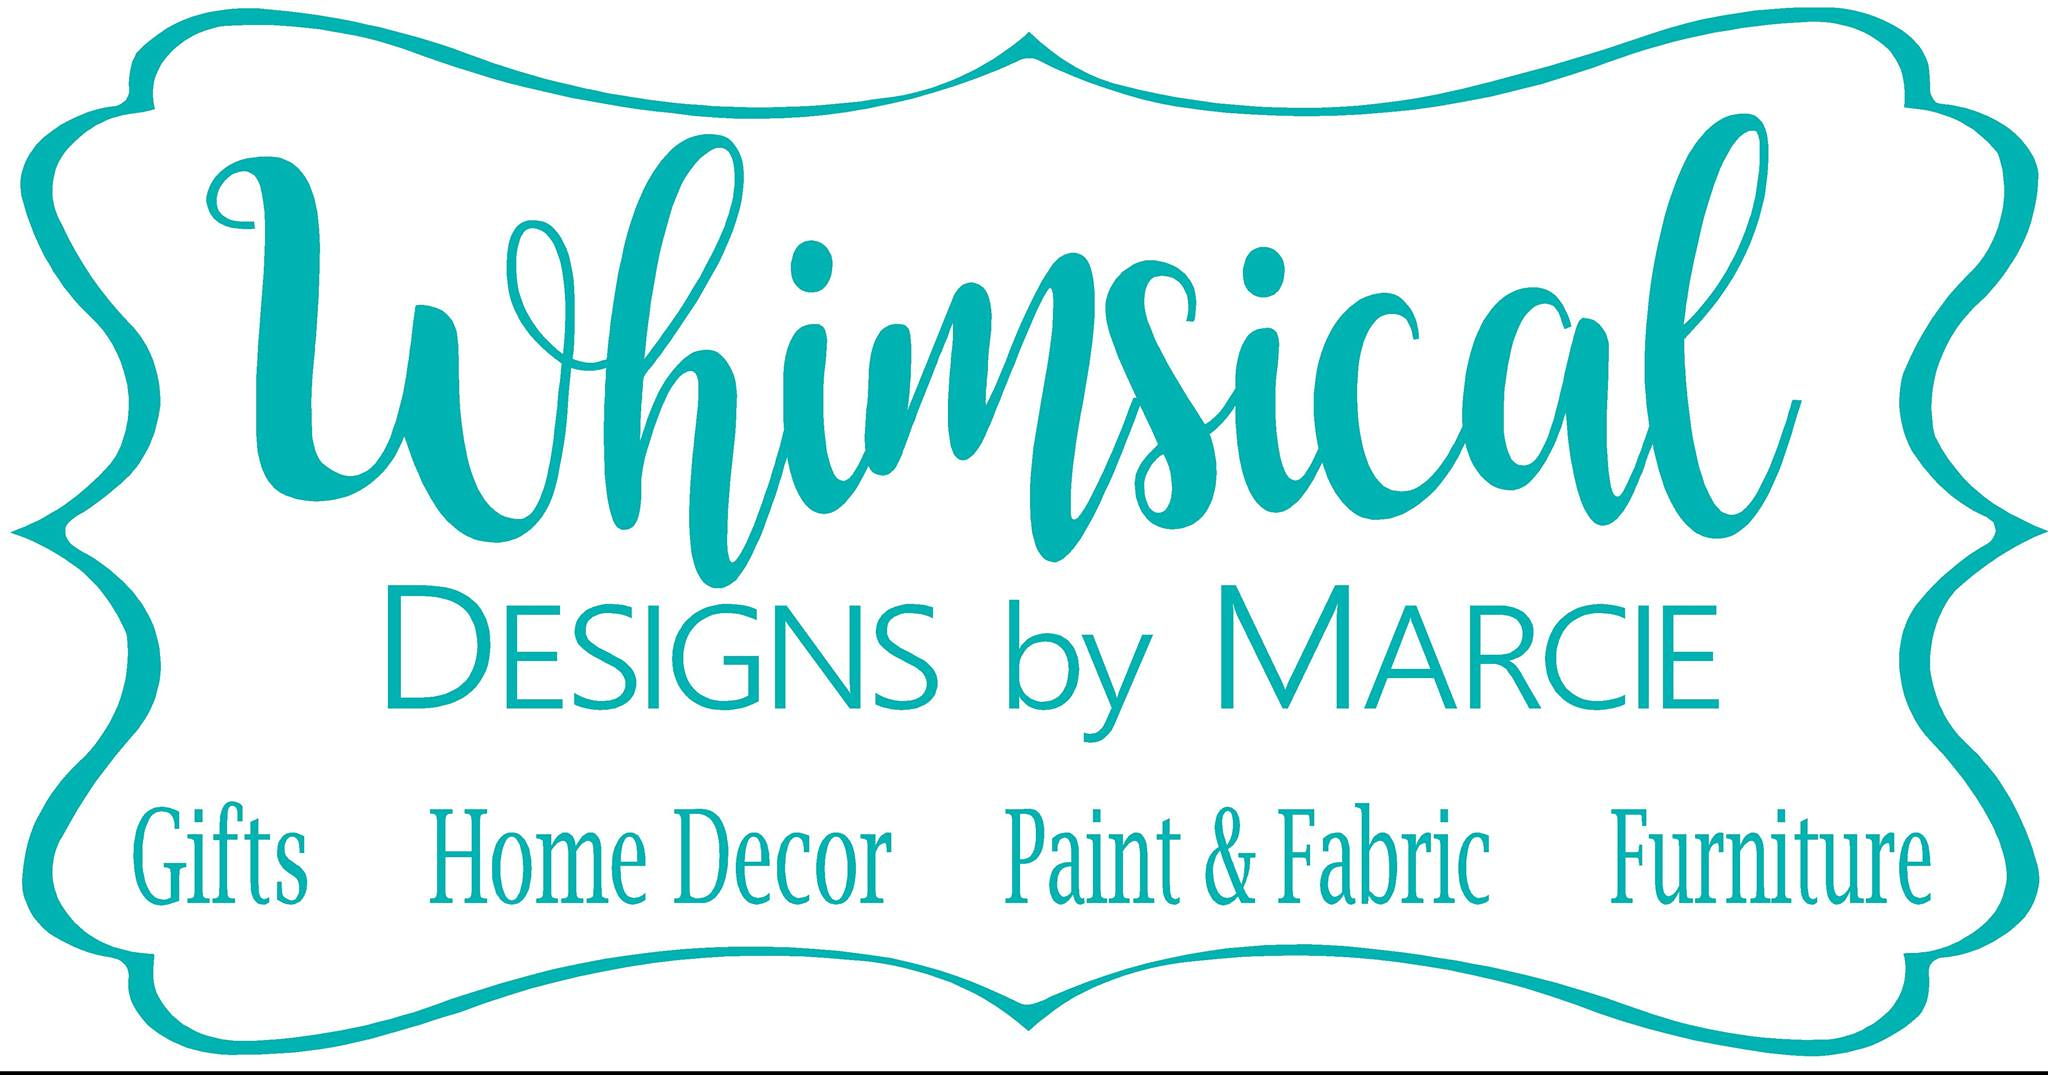 Whimsical designs by Marcie